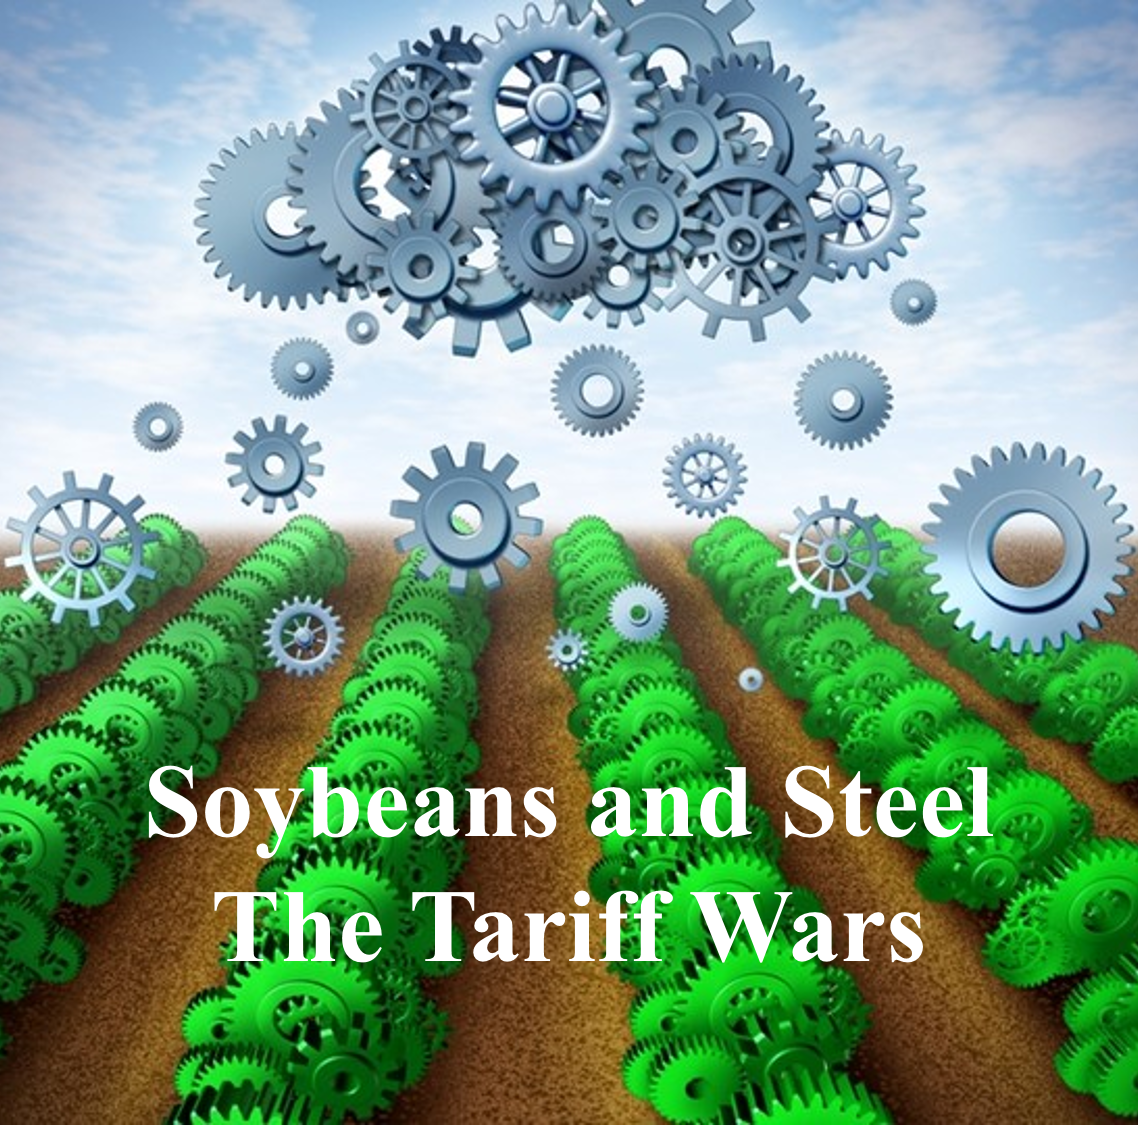 Soybeans and Steel – The Tariff Wars